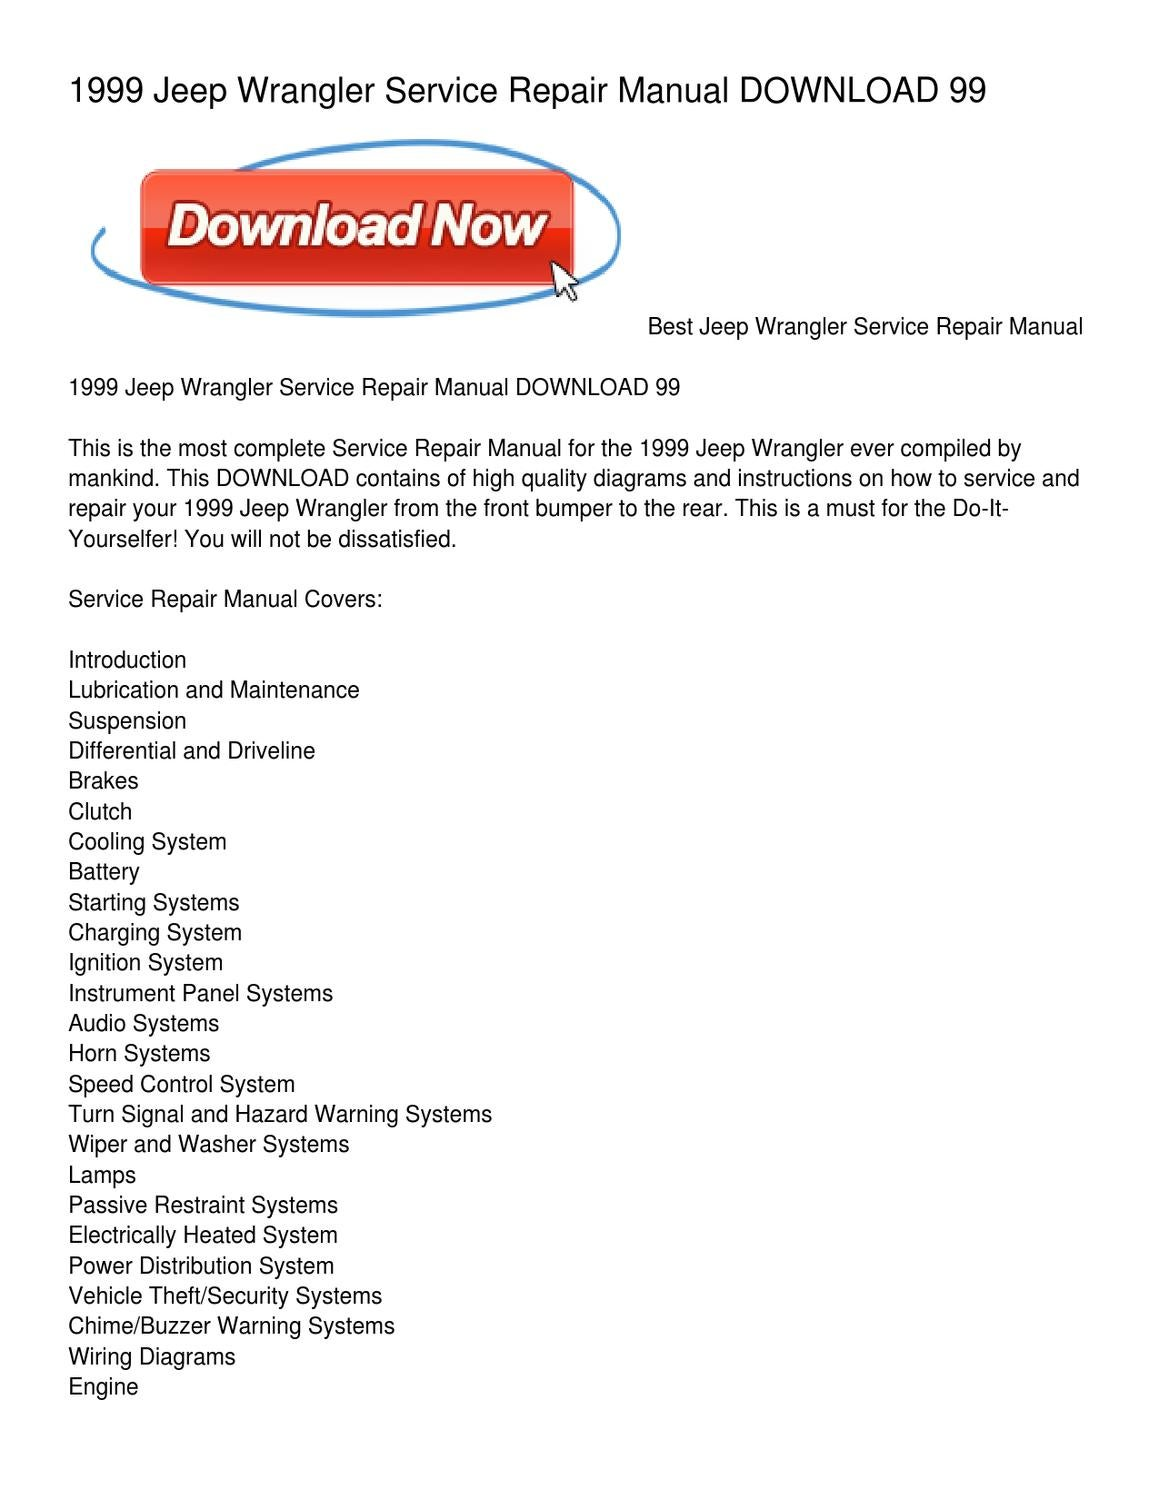 hight resolution of 1999 jeep wrangler service repair manual download 99 by clifford morley issuu